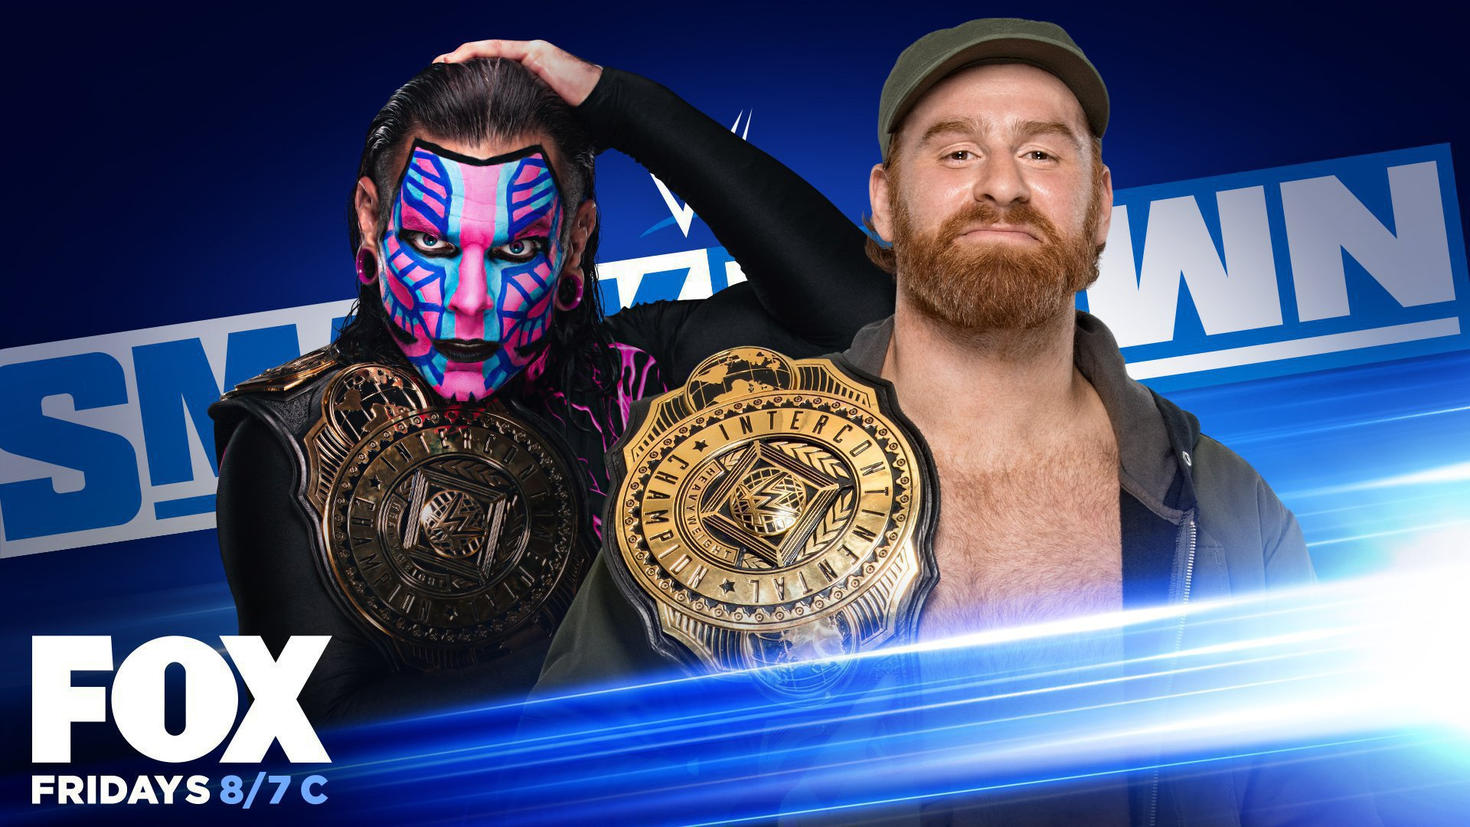 WWE Smackdown Preview (25/09/20): Roman Reigns; Styles-Hardy; Bliss-Evans 1